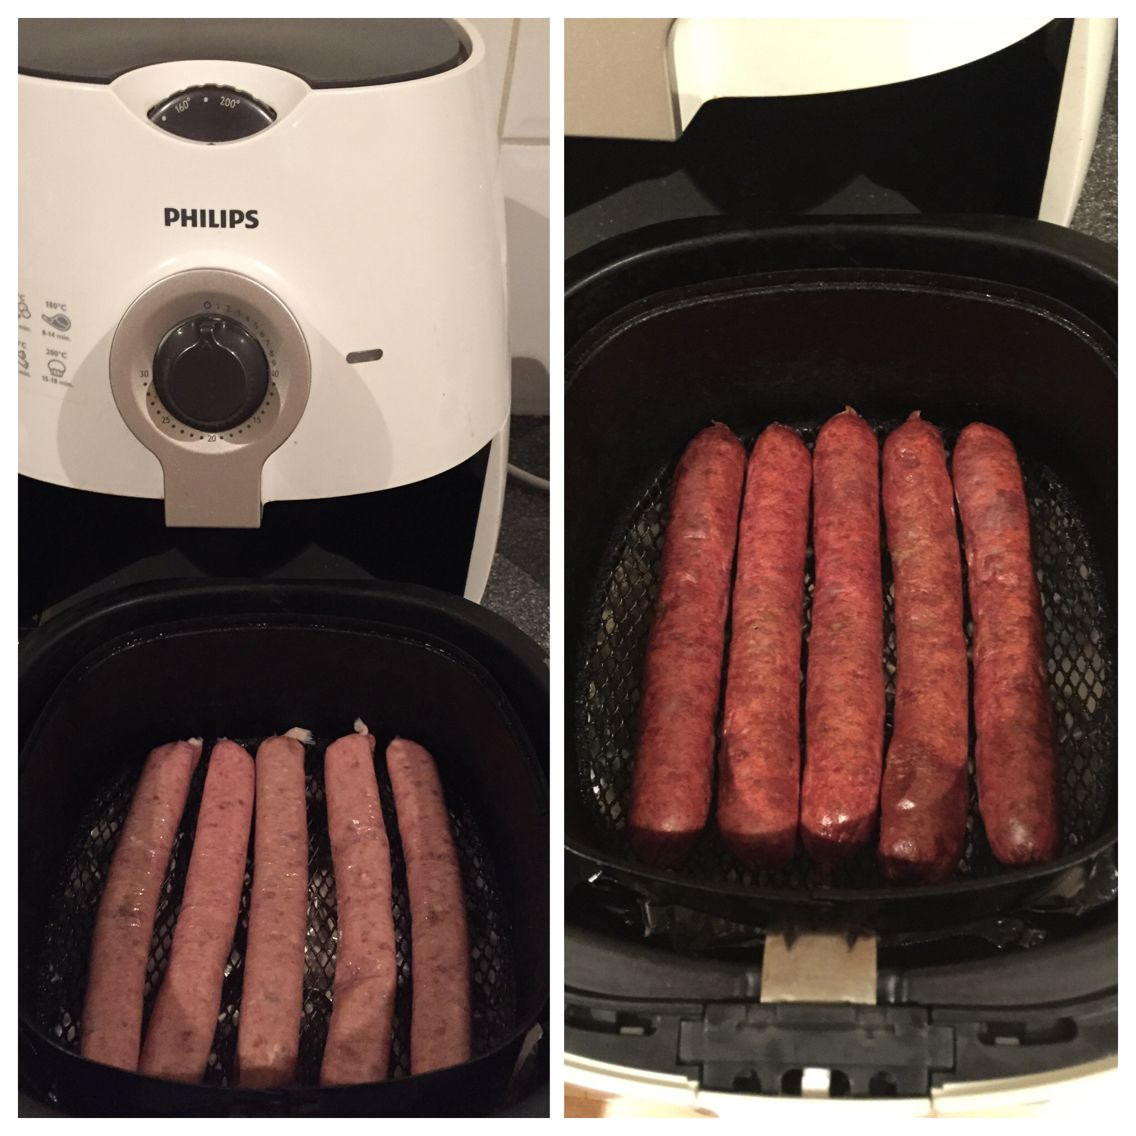 Philips Air Fryer Sausages Cooked At 180 Degrees For 15 Minutes Cold Air Fryer Pierce The Sausages With A Fork On On Airfryer Recepten Eten En Drinken Eten